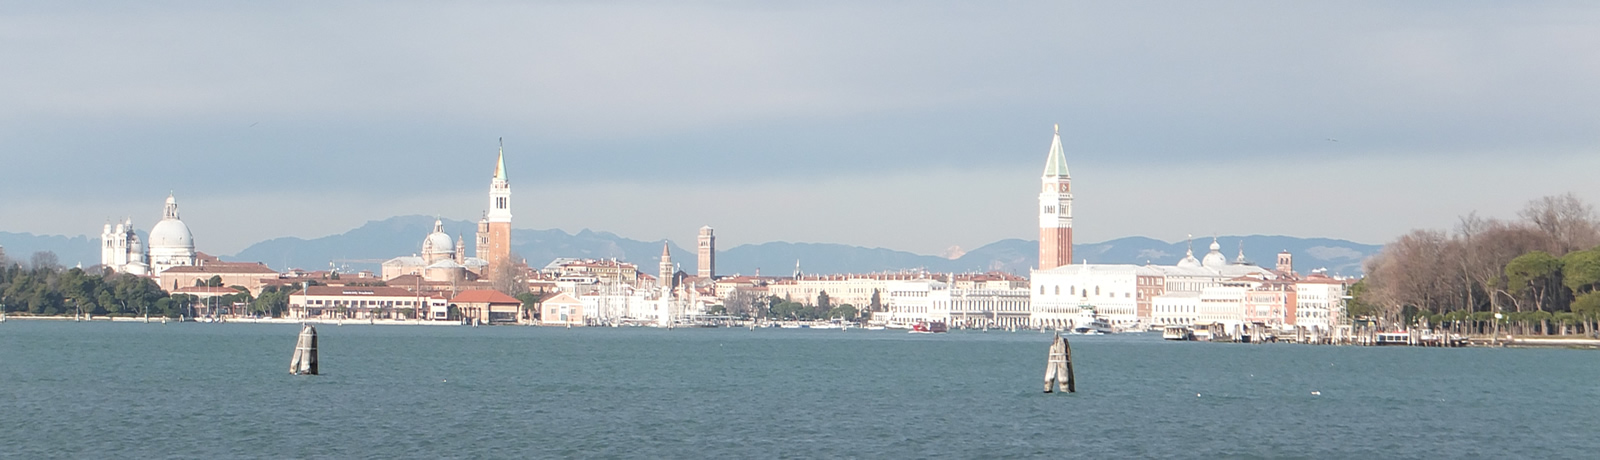 Private Venice Tours and Boat tours ofVenice and its Lagoon. Book private Venice Tours with Venice Guide and Boat